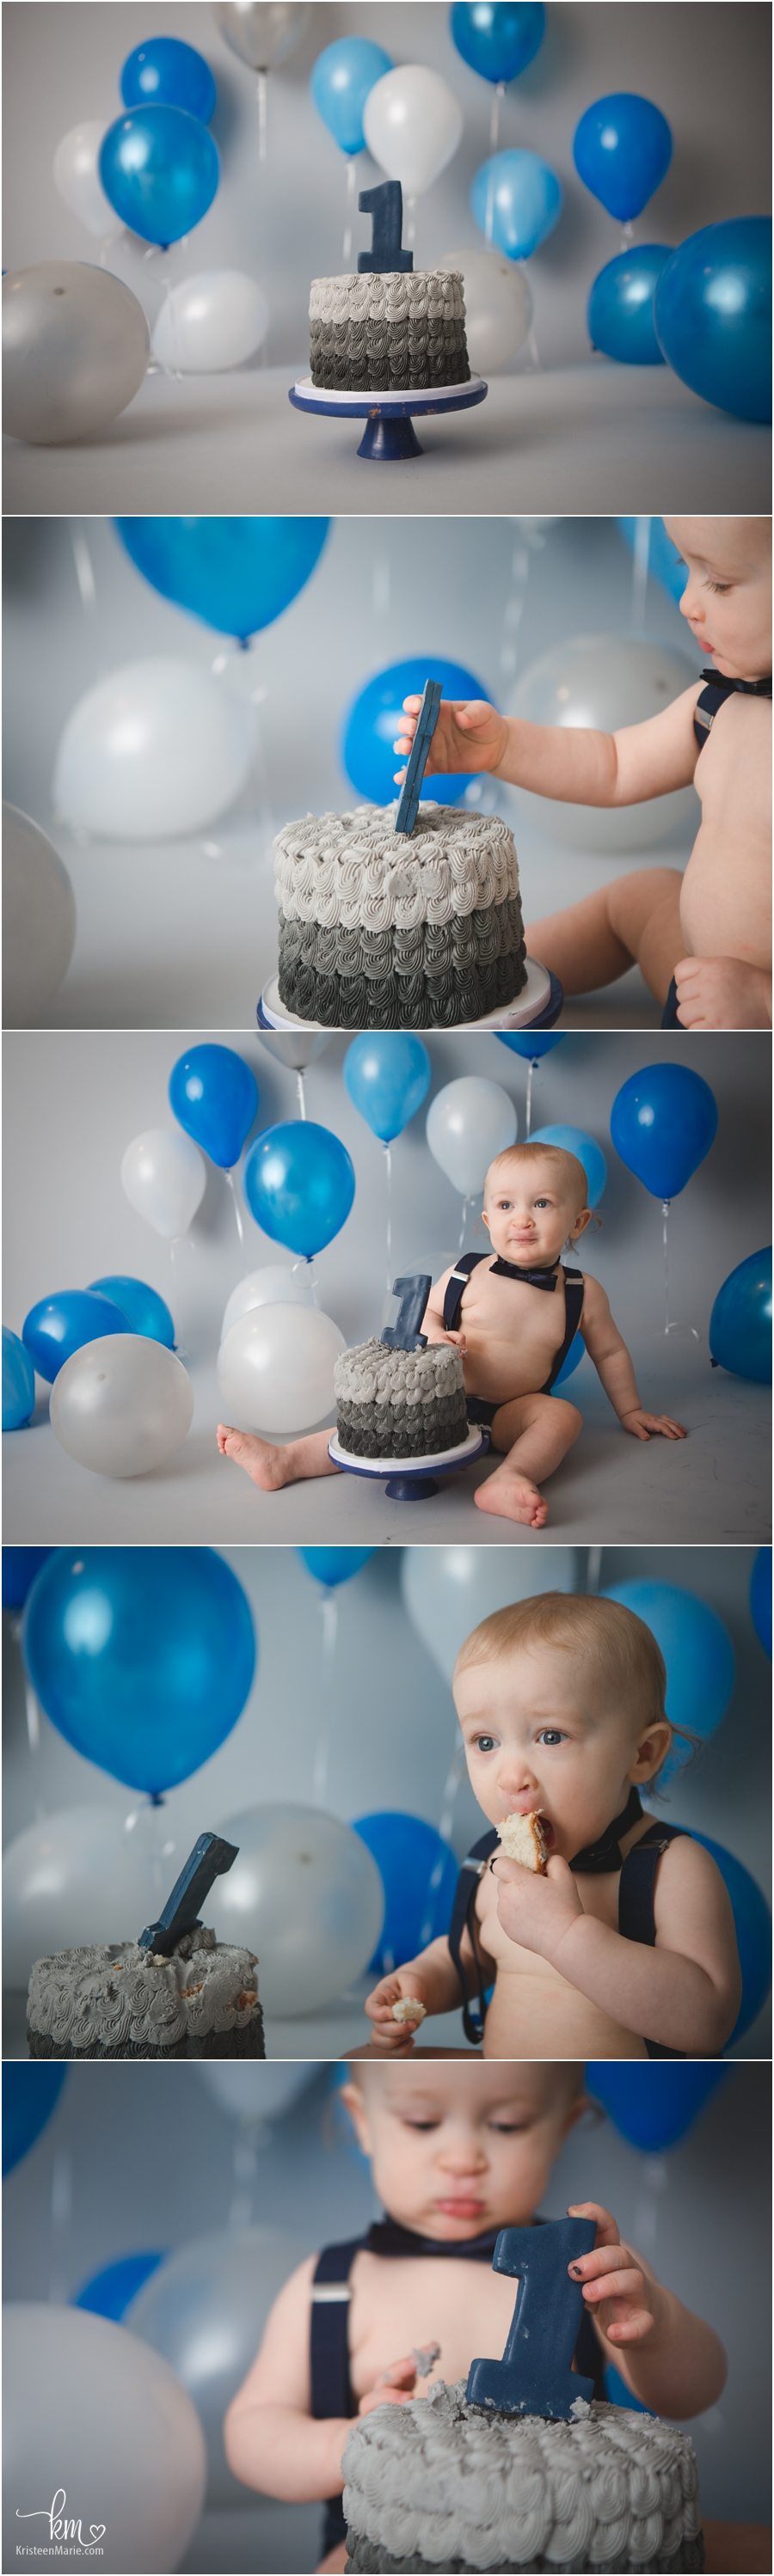 blue, grey and silver balloon themed cake smash session